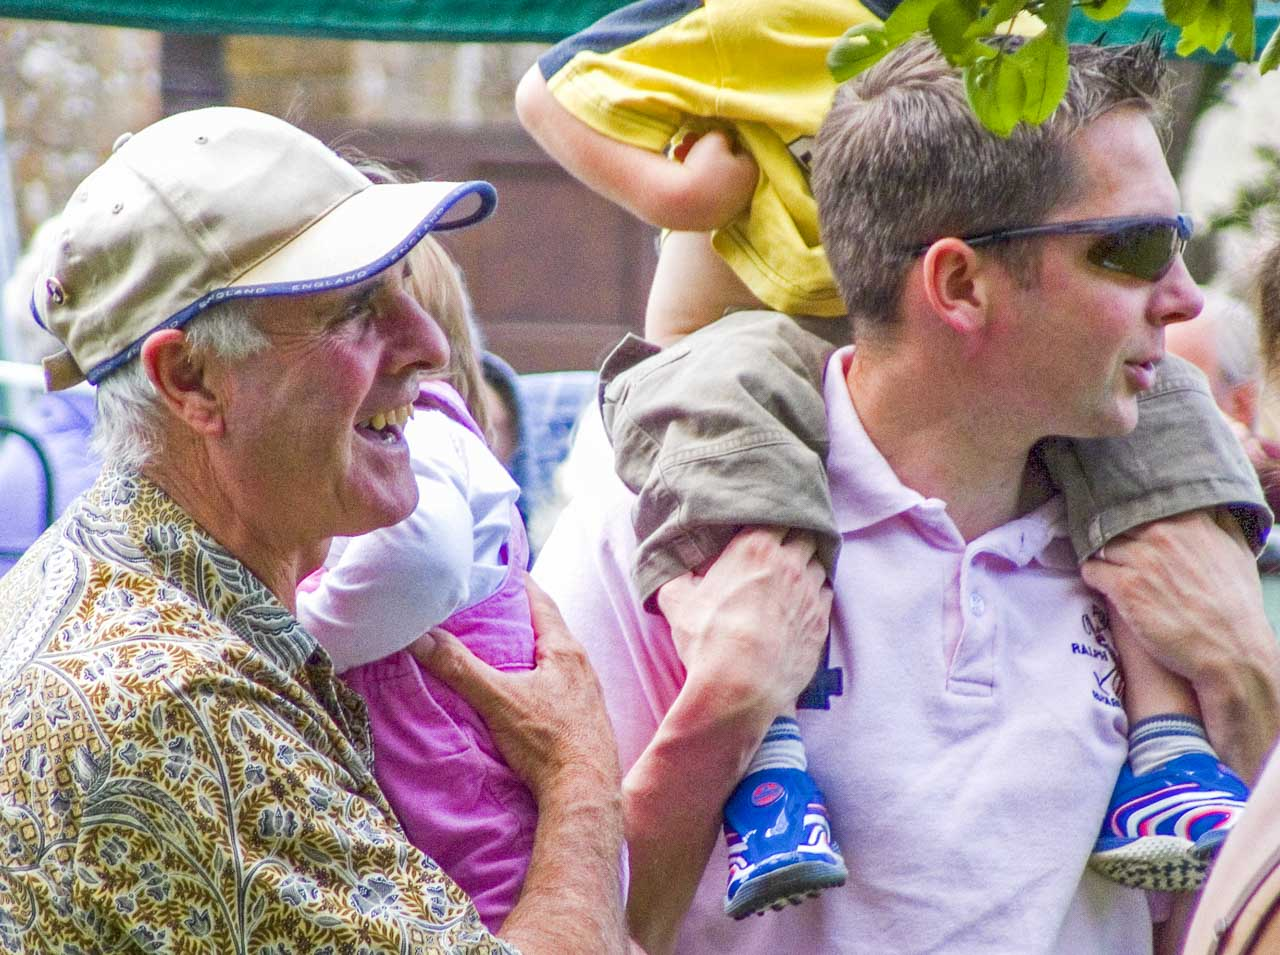 Keith sharing an amusing moment with his son Shaun, during Cattistock's 2007 Fete